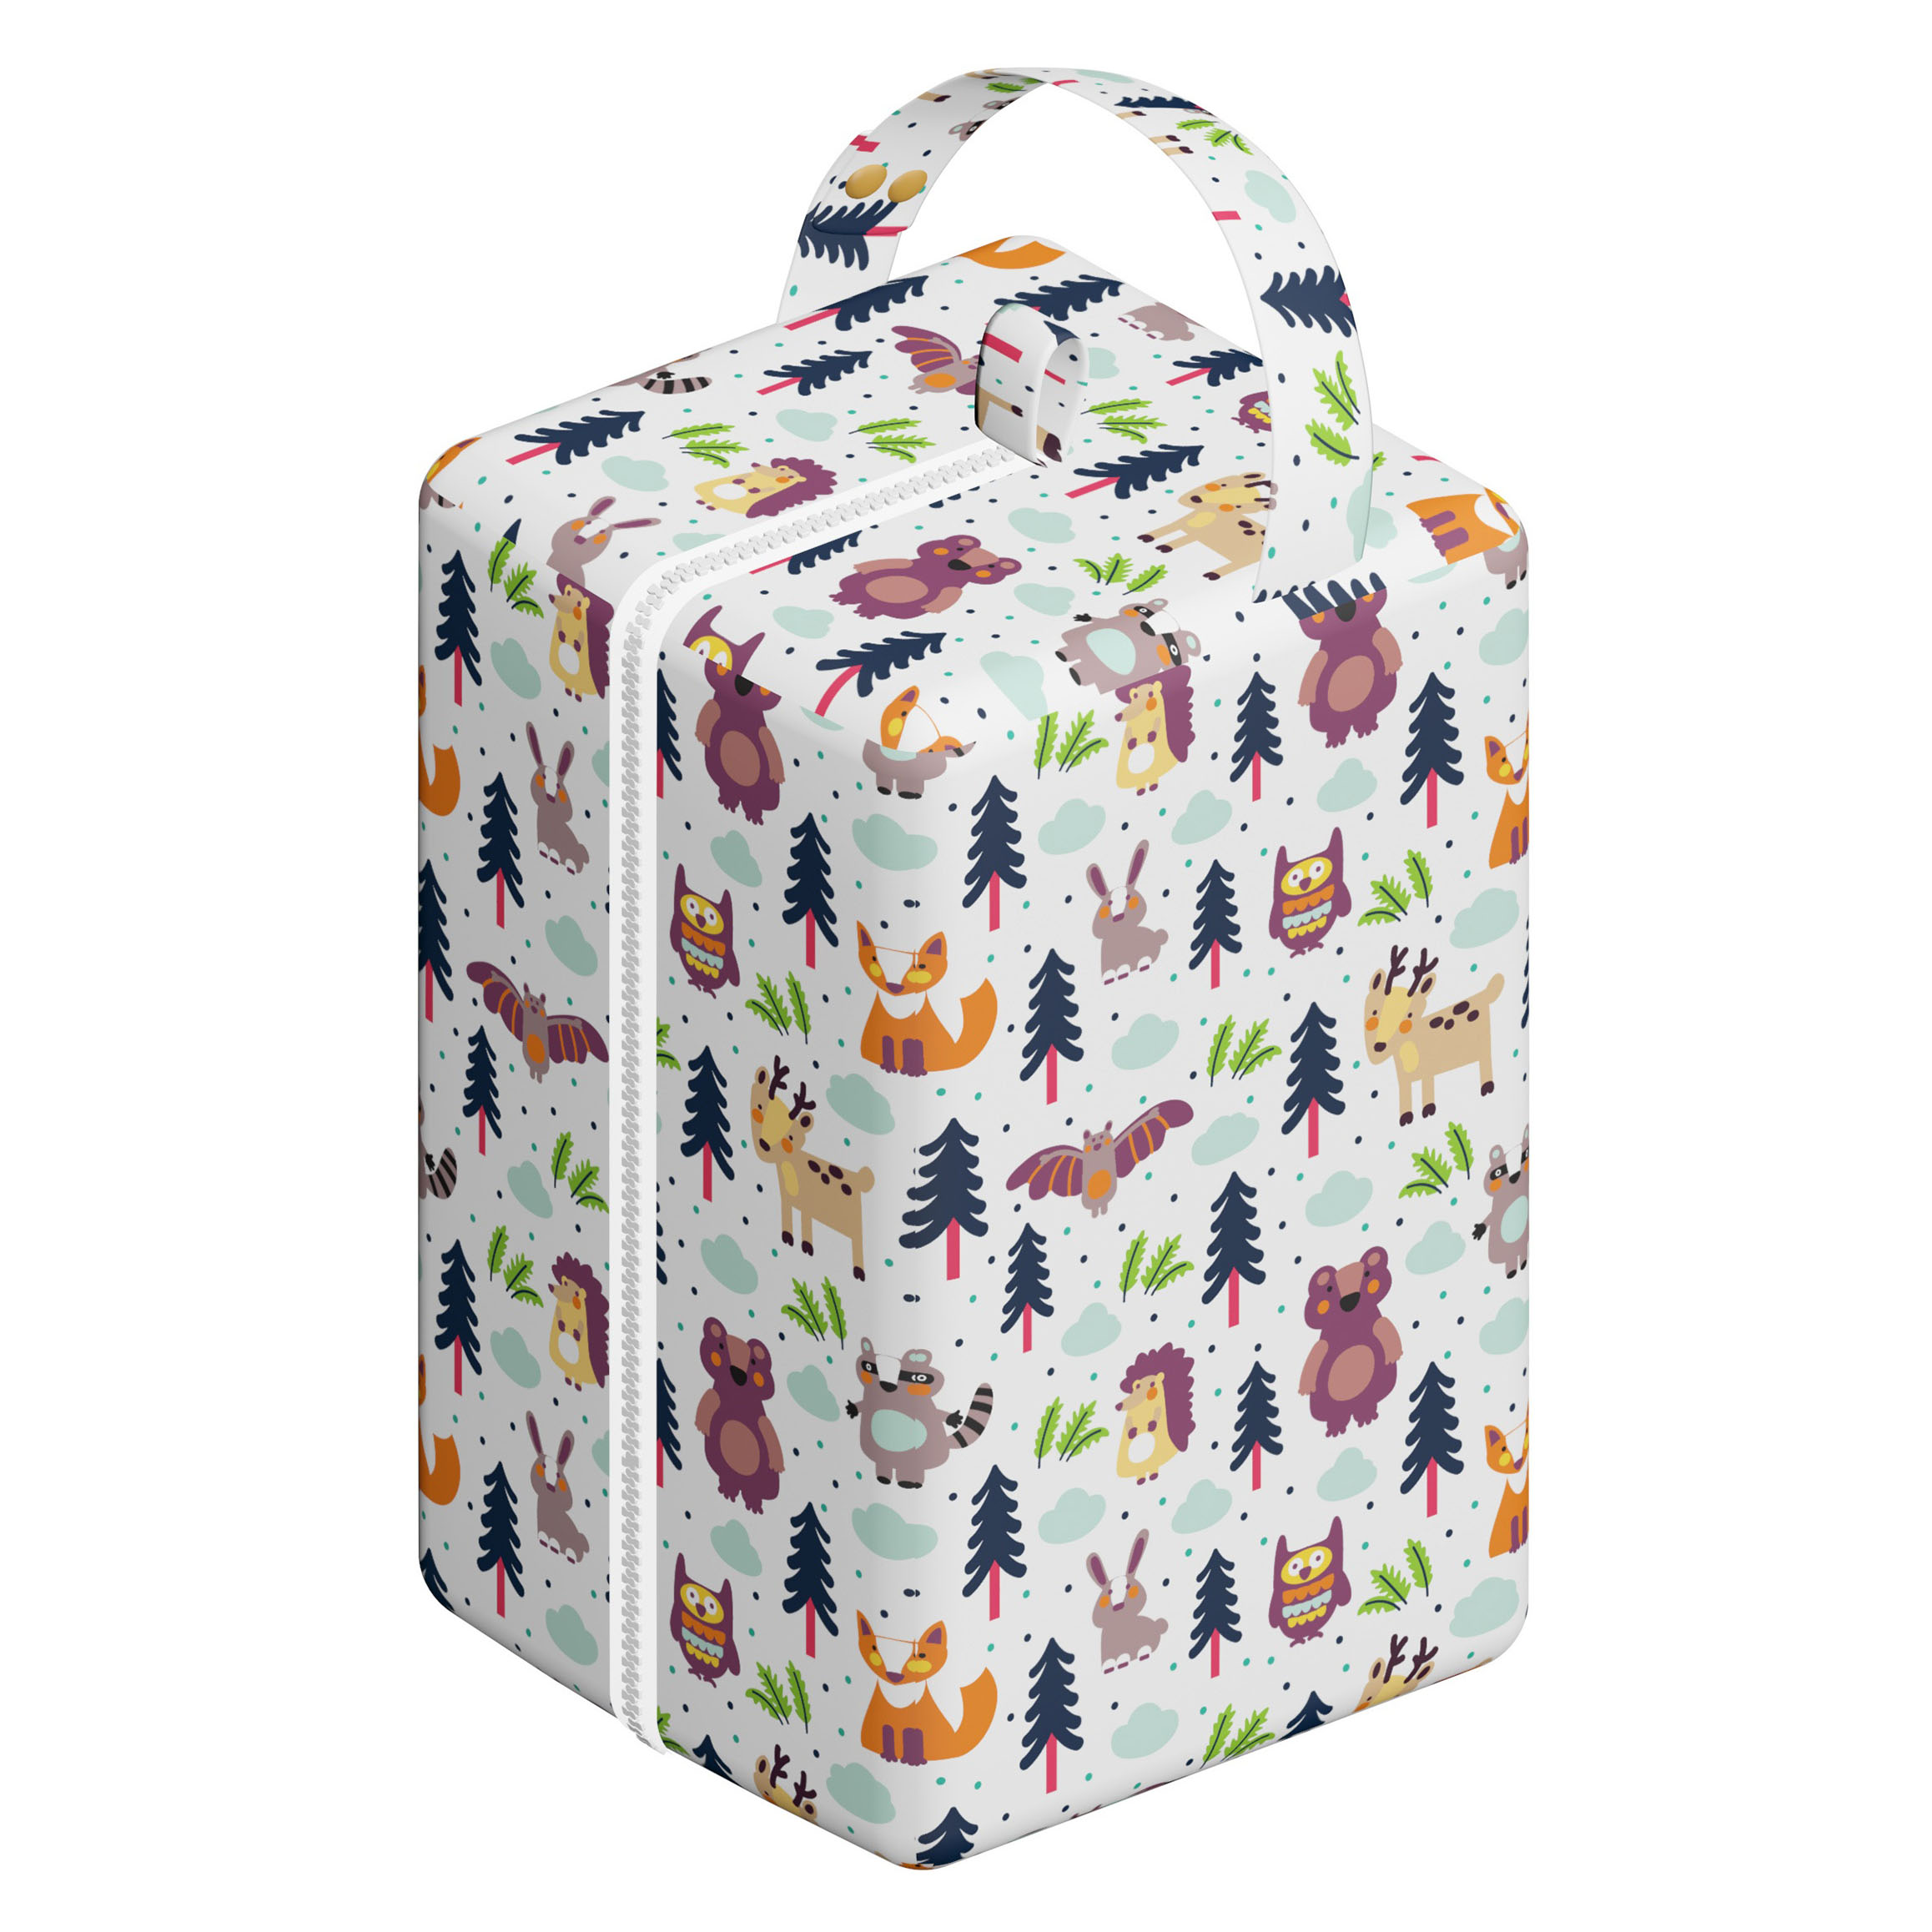 Moms Kiss Hi Sprout Grab and Go Waterproof Washable Reusable Diaper Wet Dry Cloth Diaper Bags